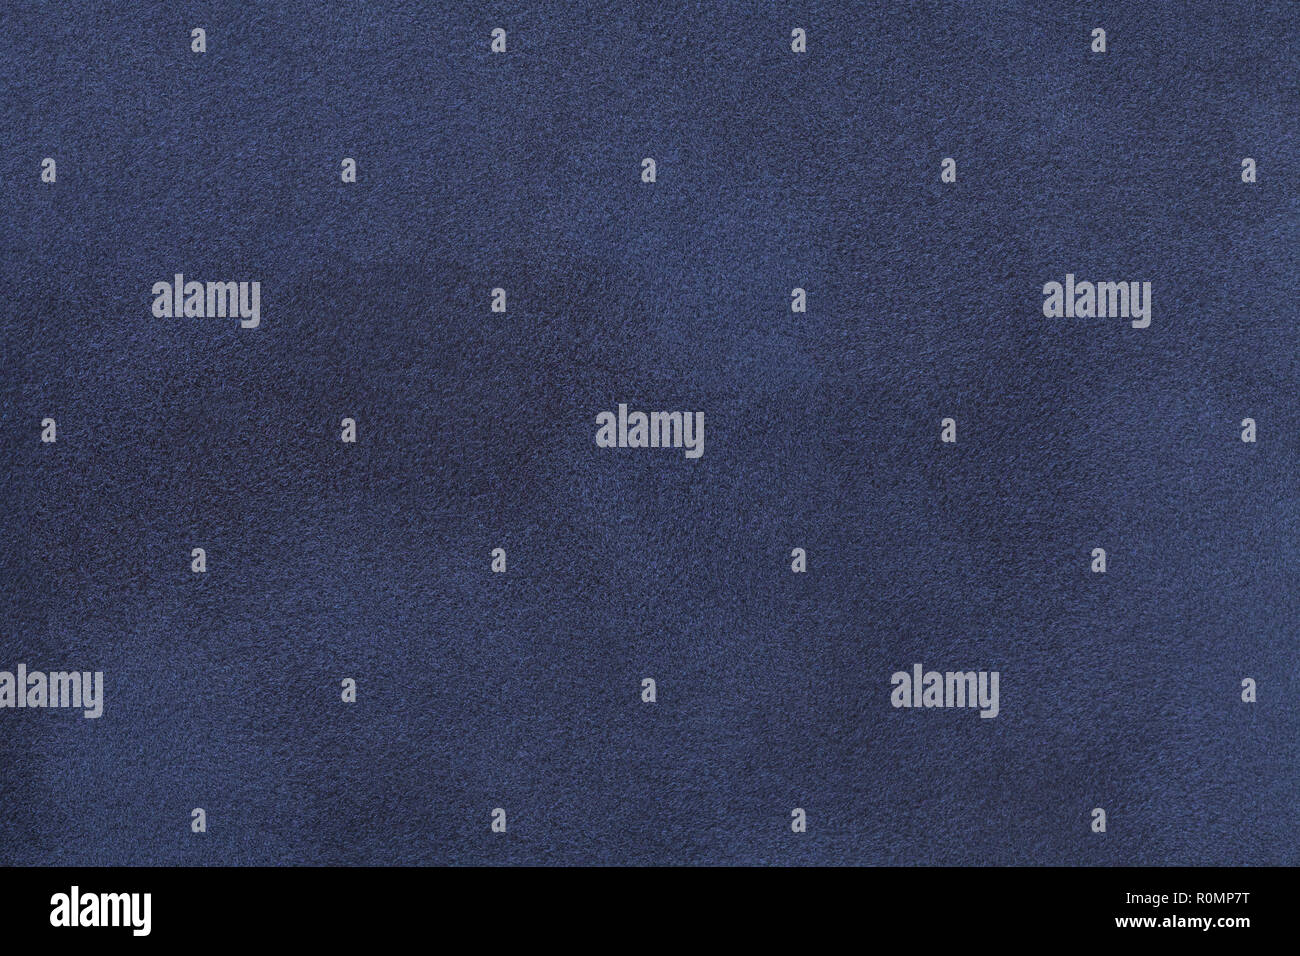 Navy blue matte background of suede fabric, closeup. Velvet texture of seamless denim leather. - Stock Image